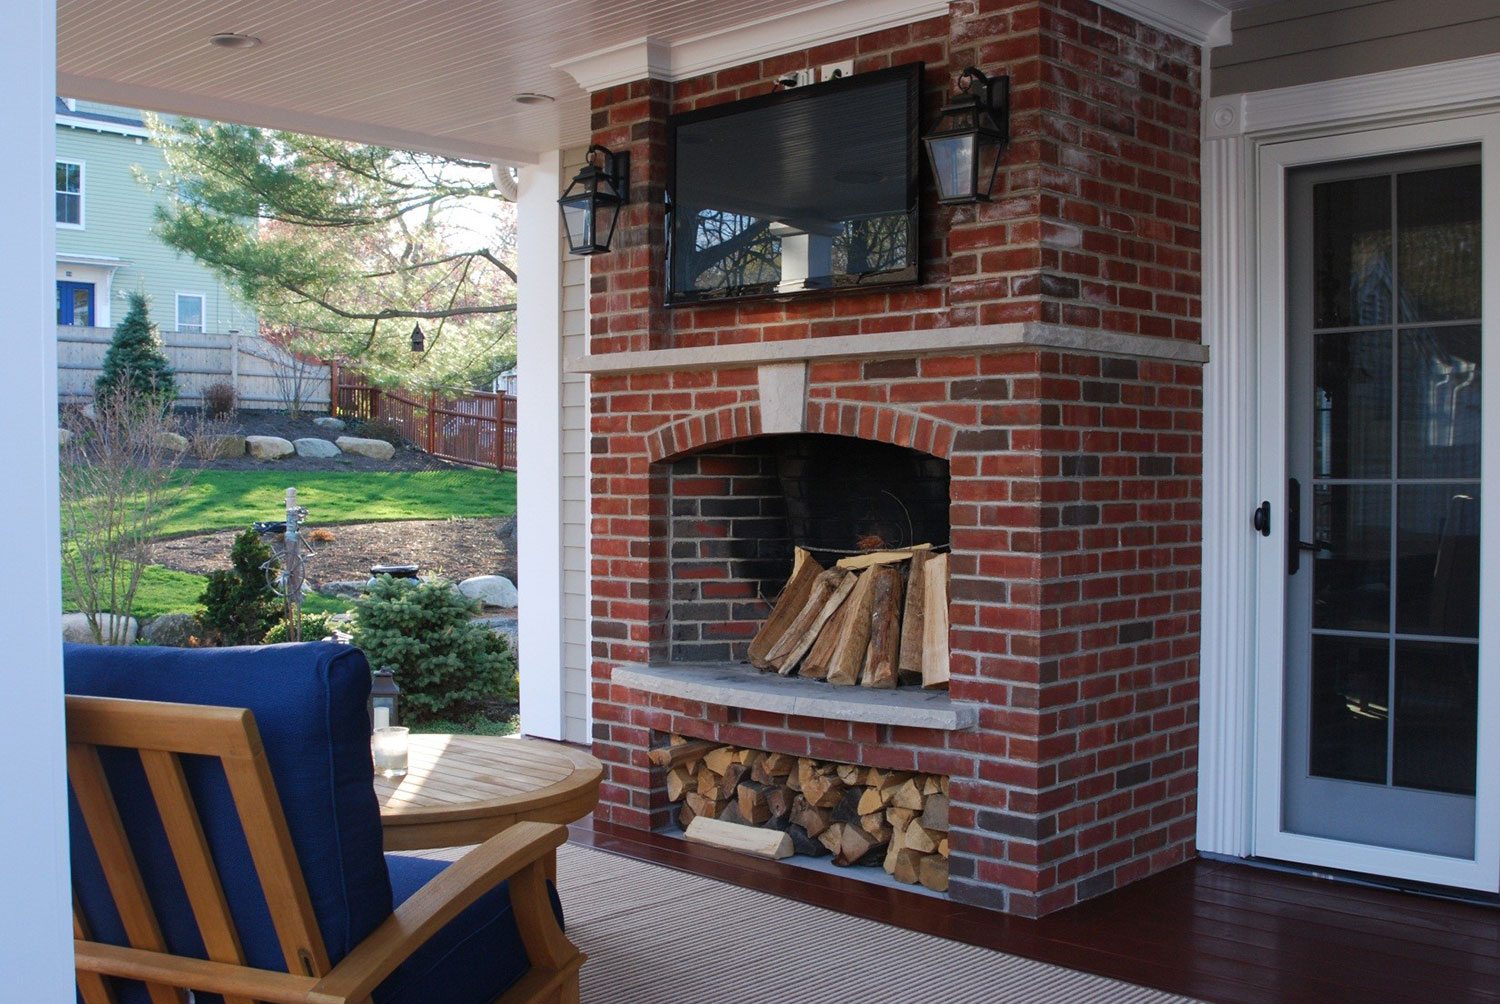 04-outdoor-seating-fireplace